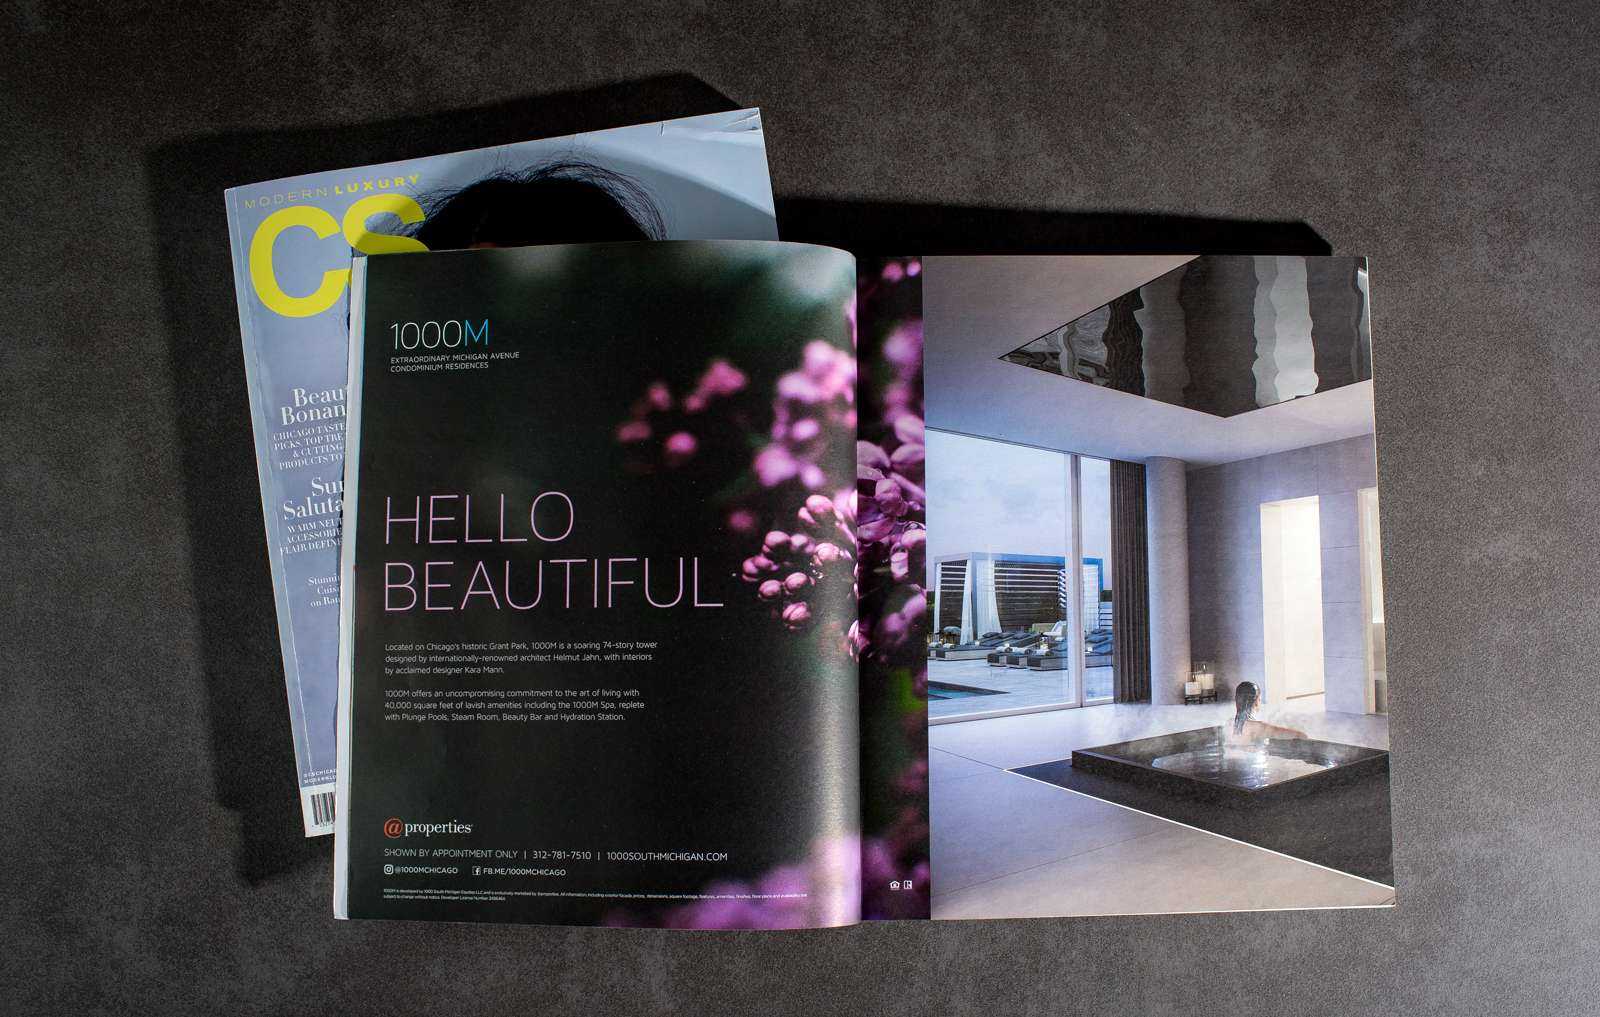 Magazine print marketing campaign designed for luxury real estate brand 1000M, with creative Hello Beautiful campaign